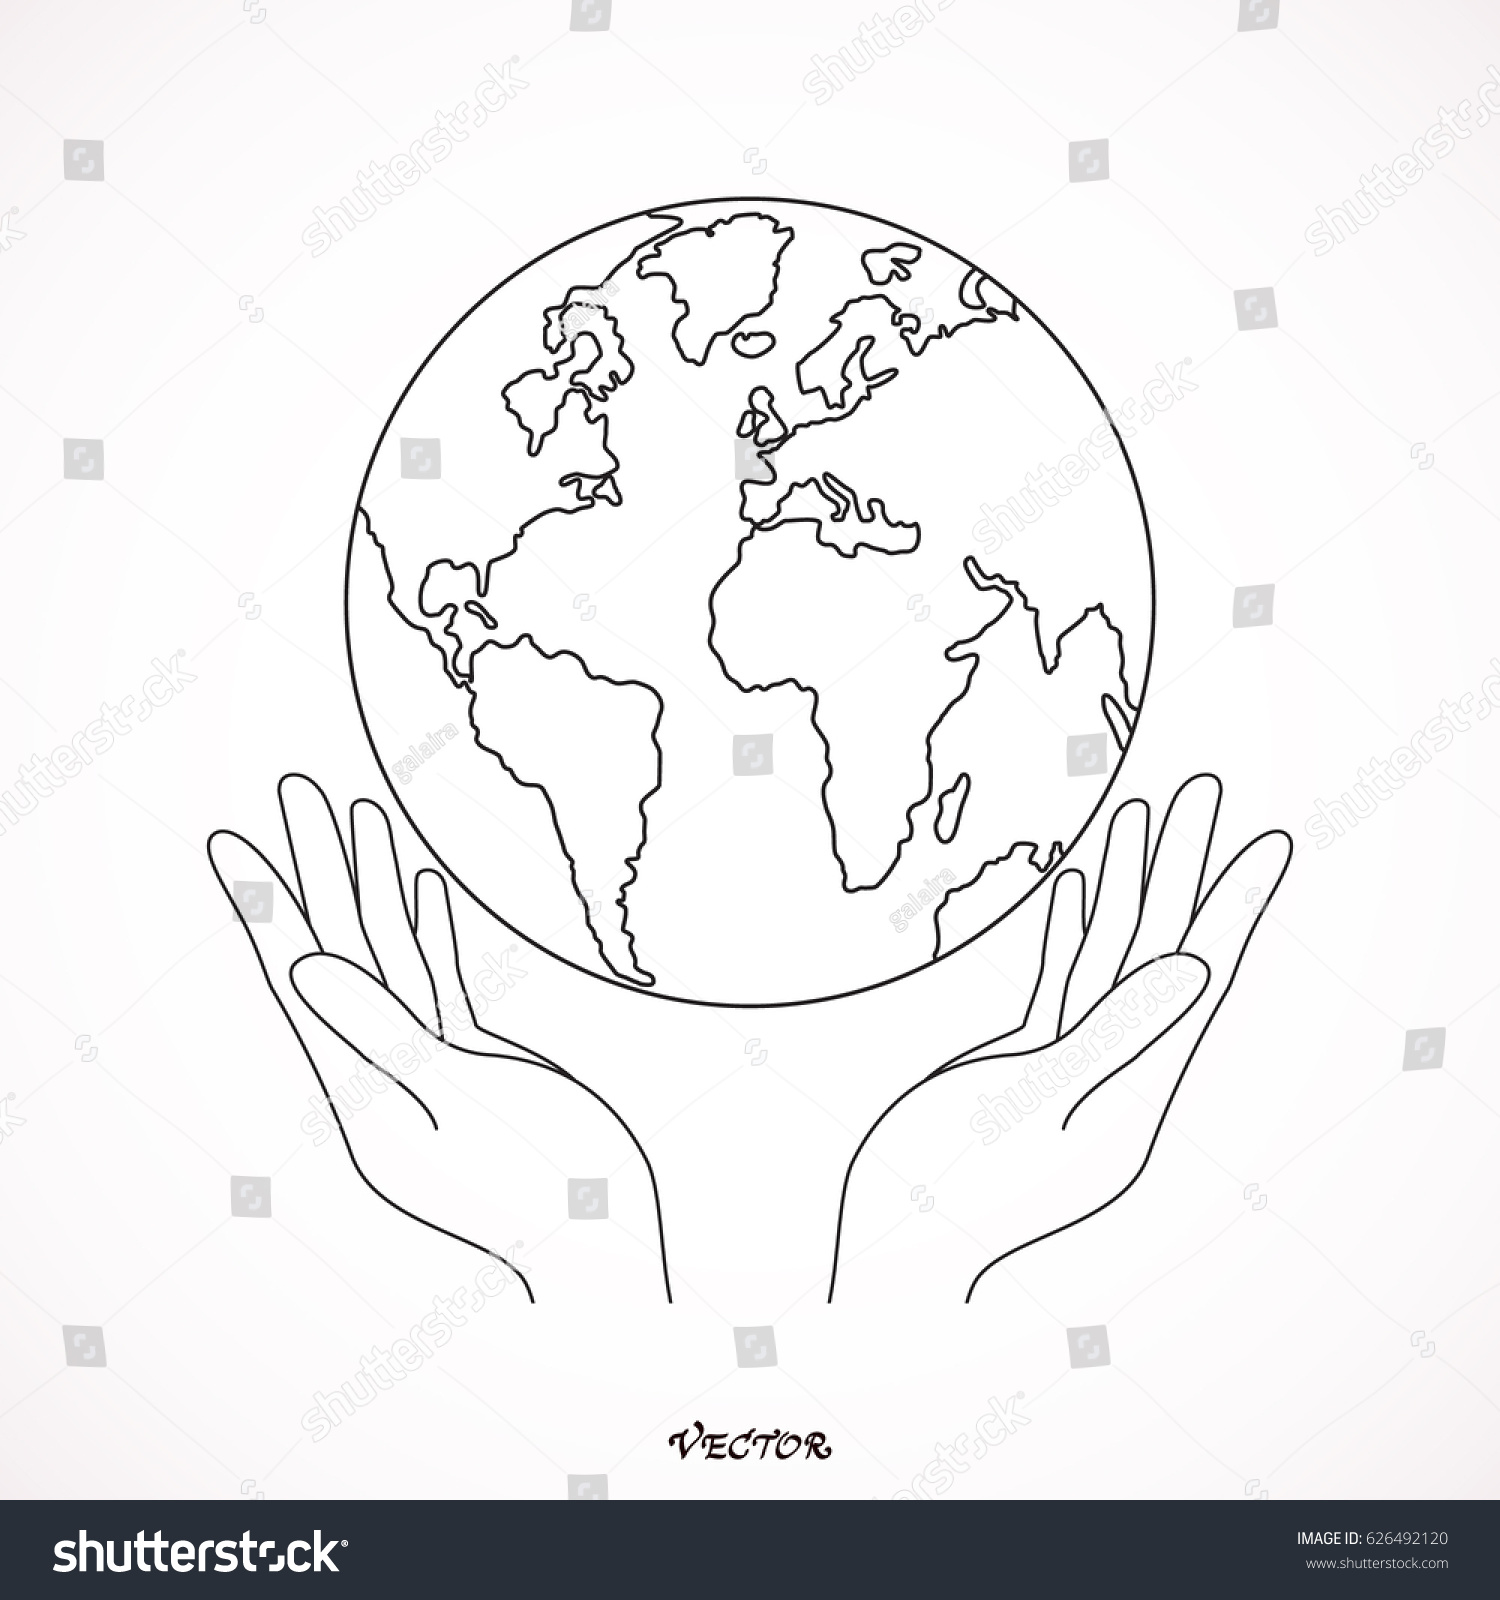 1500x1600 Collection Of Holding Earth In Hands Drawing High Quality